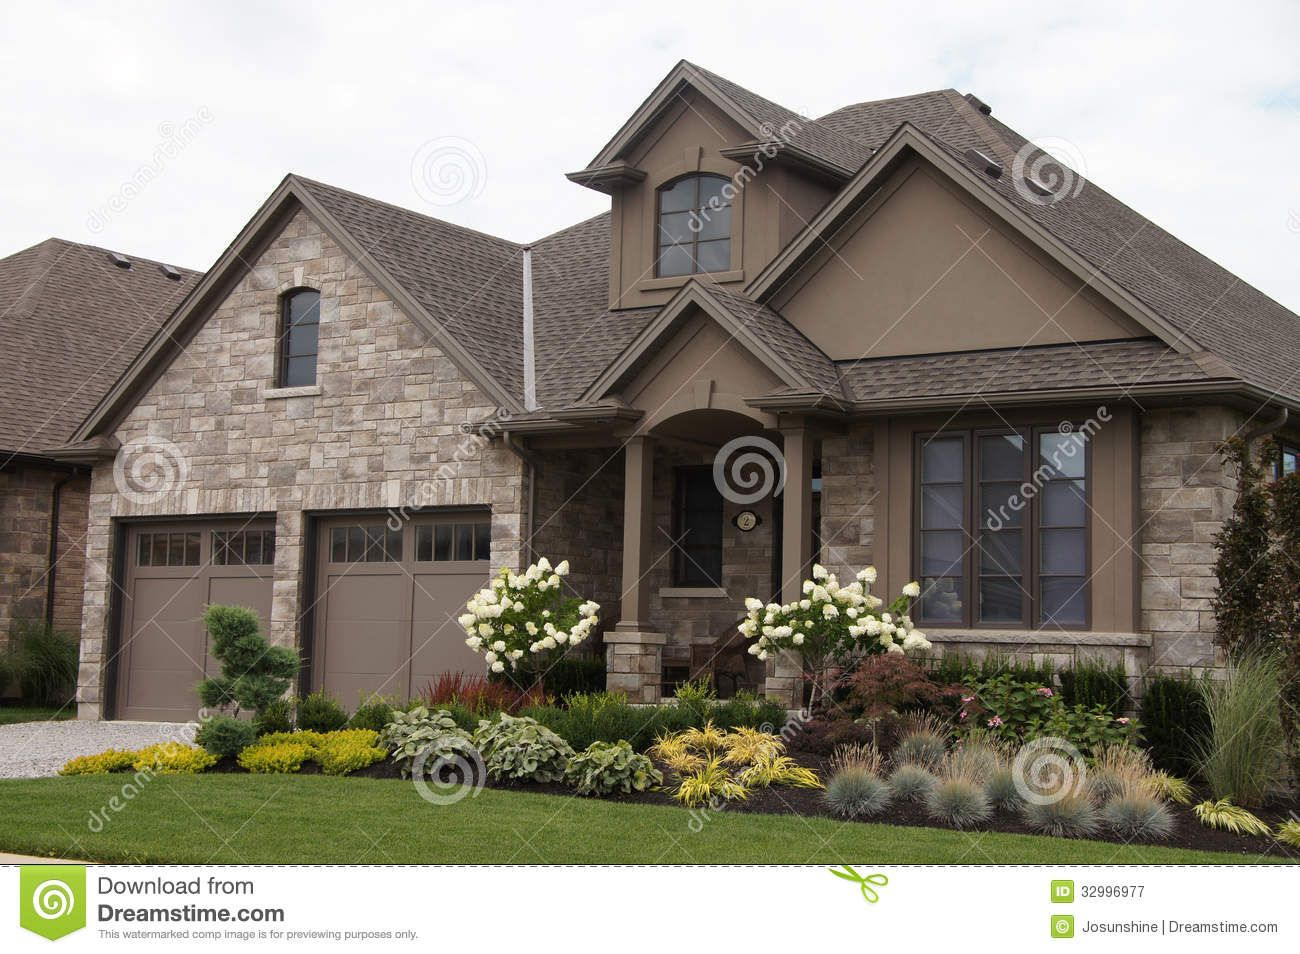 Stucco homes stucco stone house pretty garden royalty - Paint colors for exterior homes pict ...